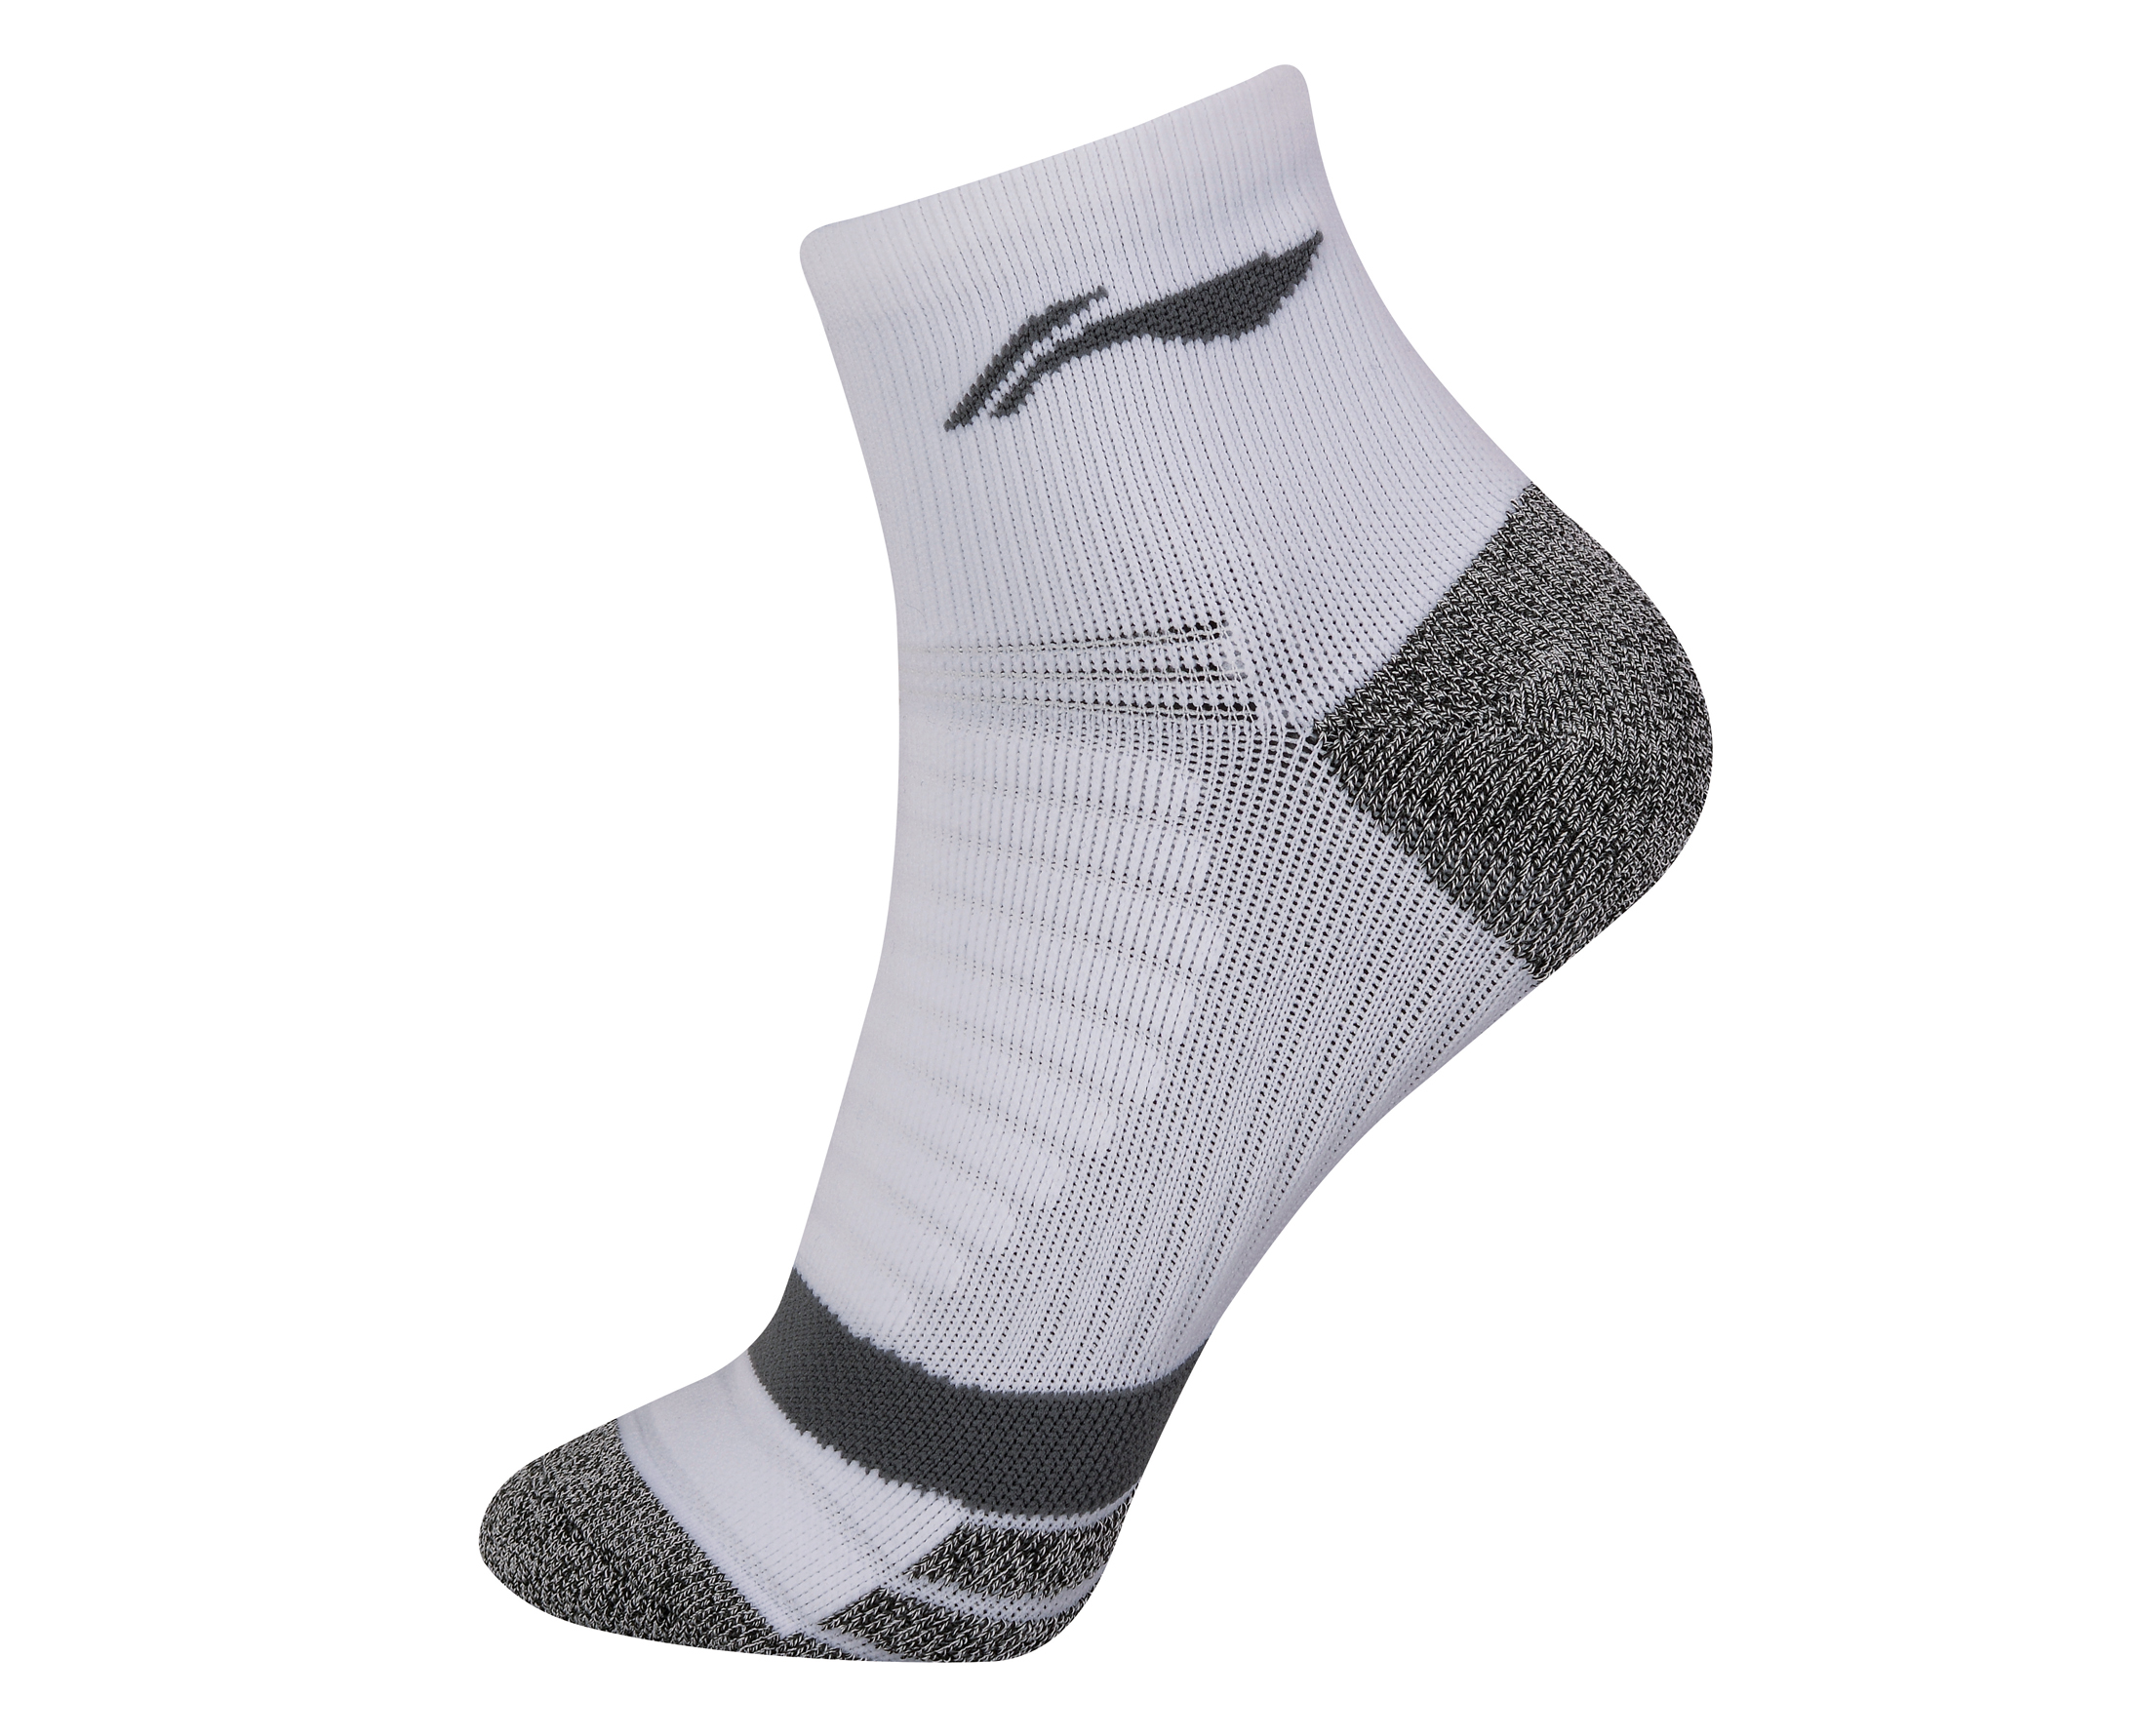 d8233cc36 Women's Badminton Socks [WHITE] AWSN302-1 [AWSN302-1]